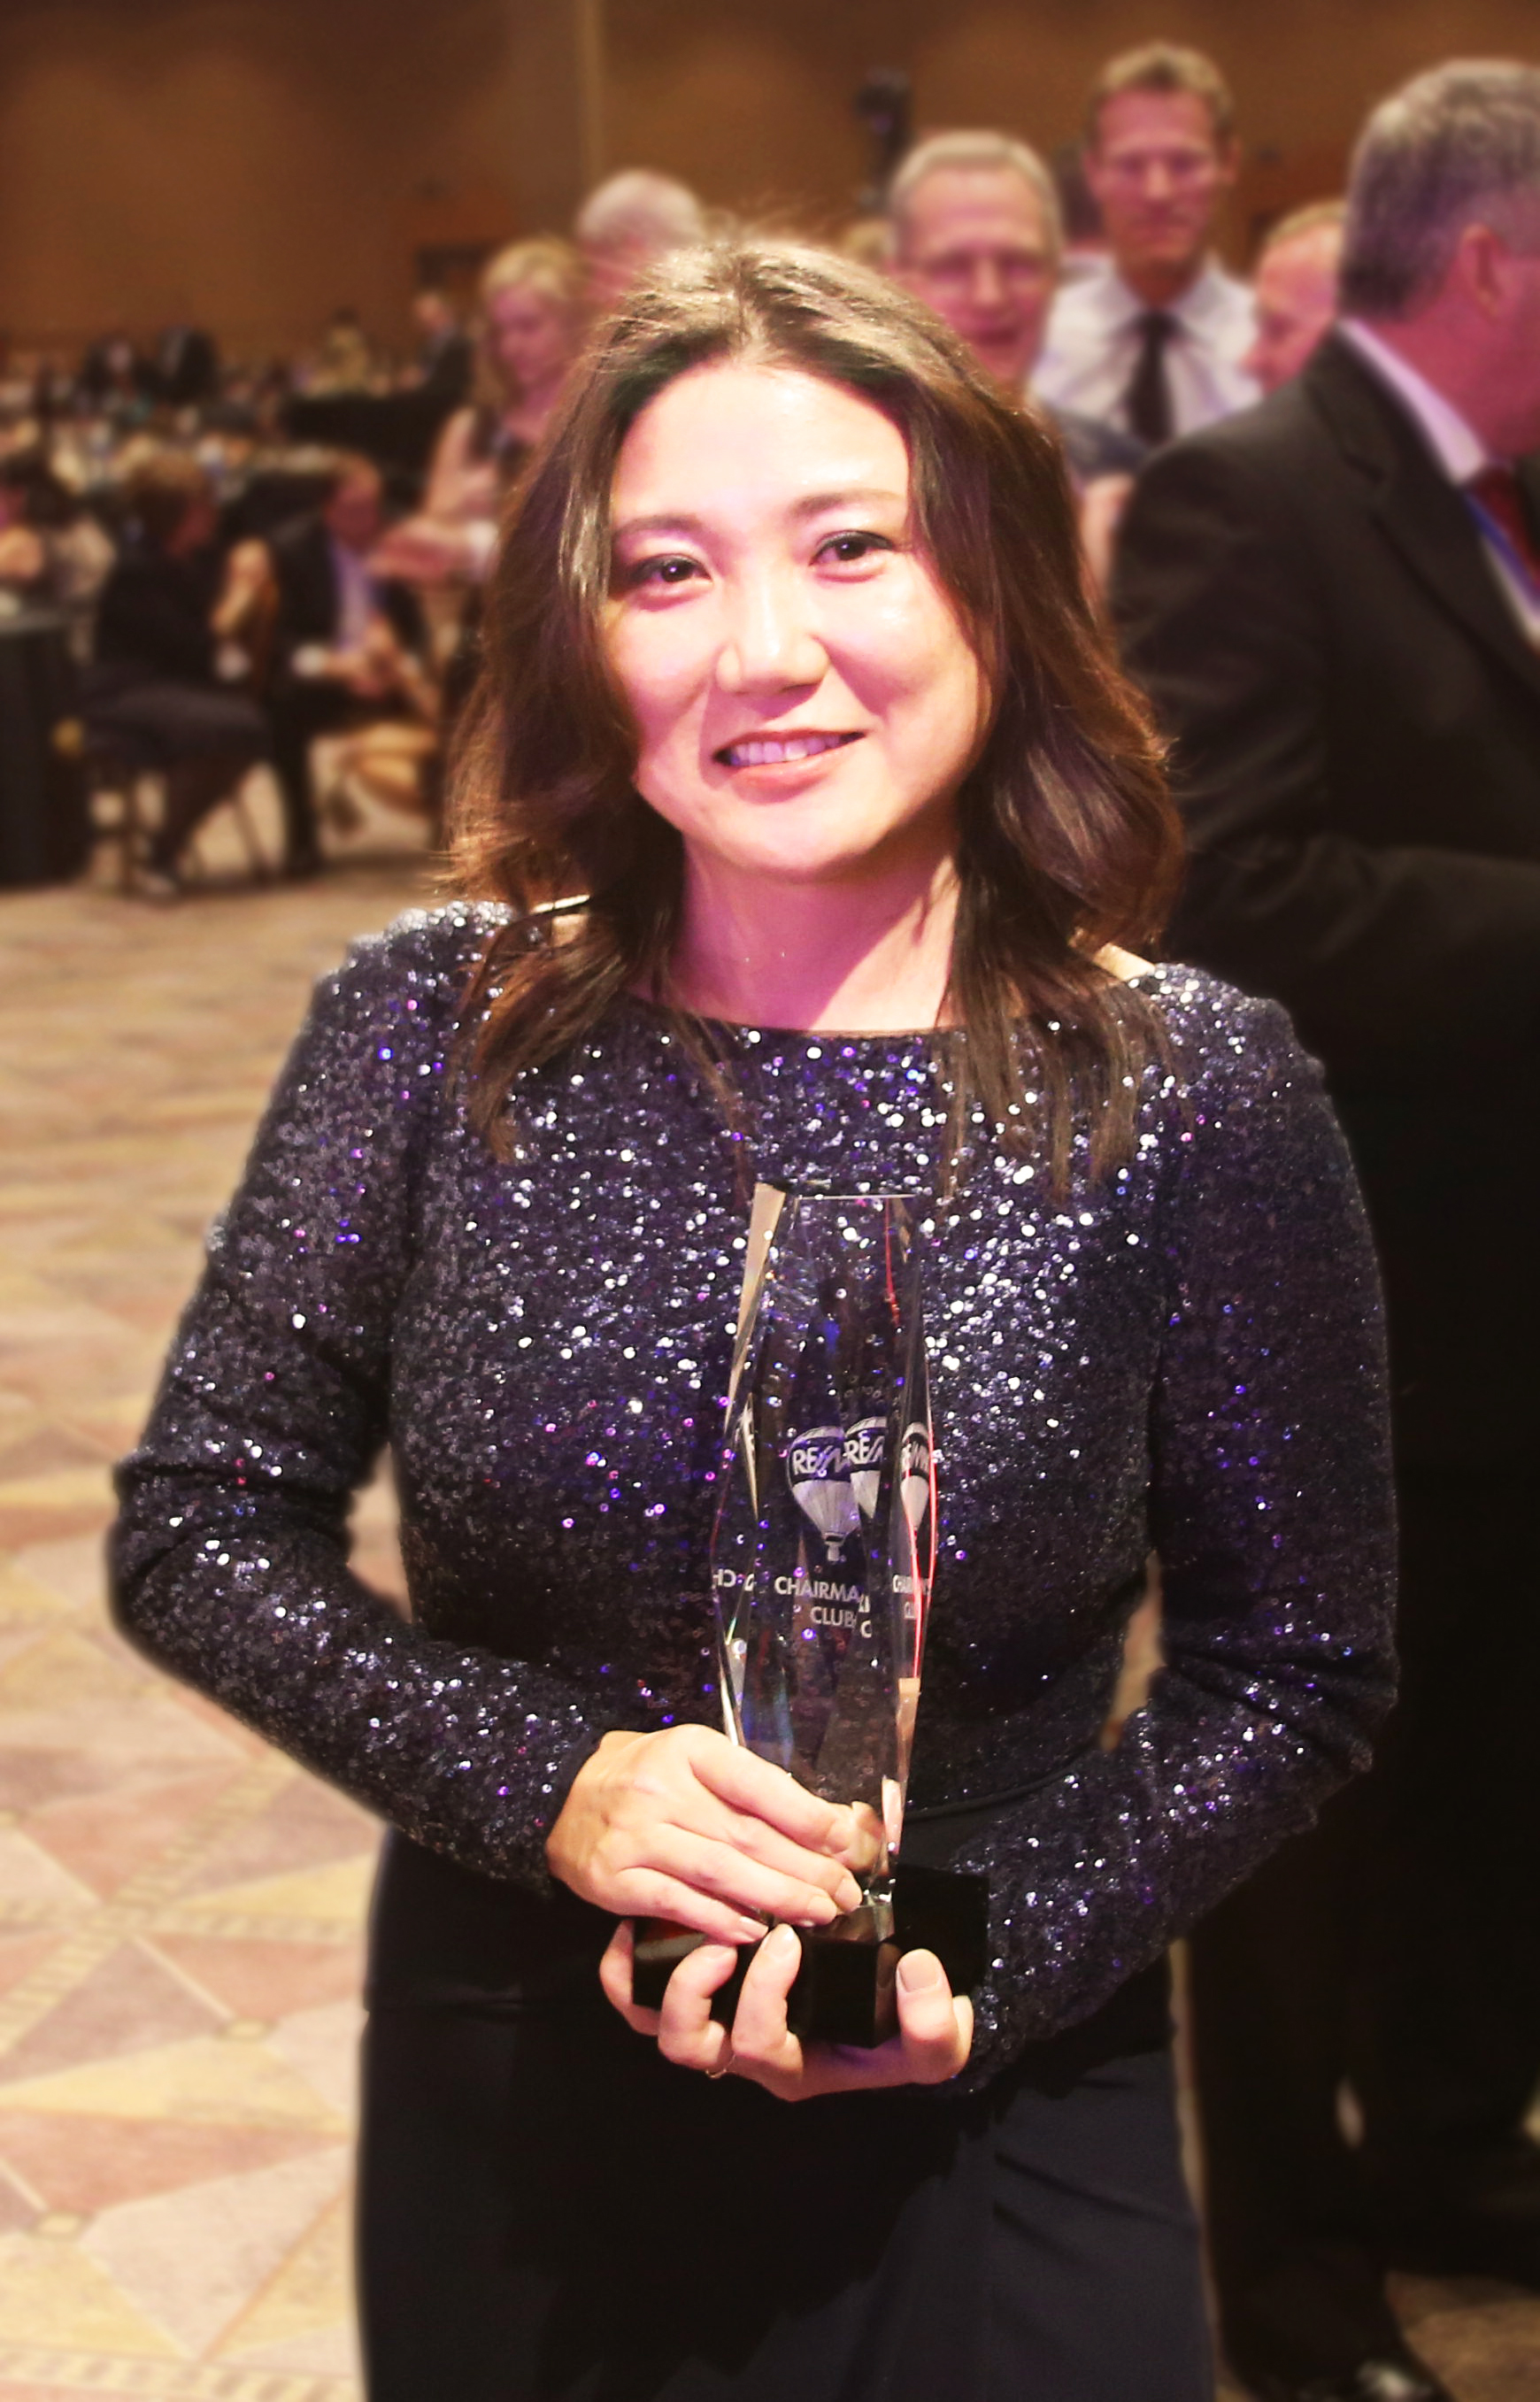 Award Night, R4 Convention, Las Vegas, Nevada. Erika Shinzato